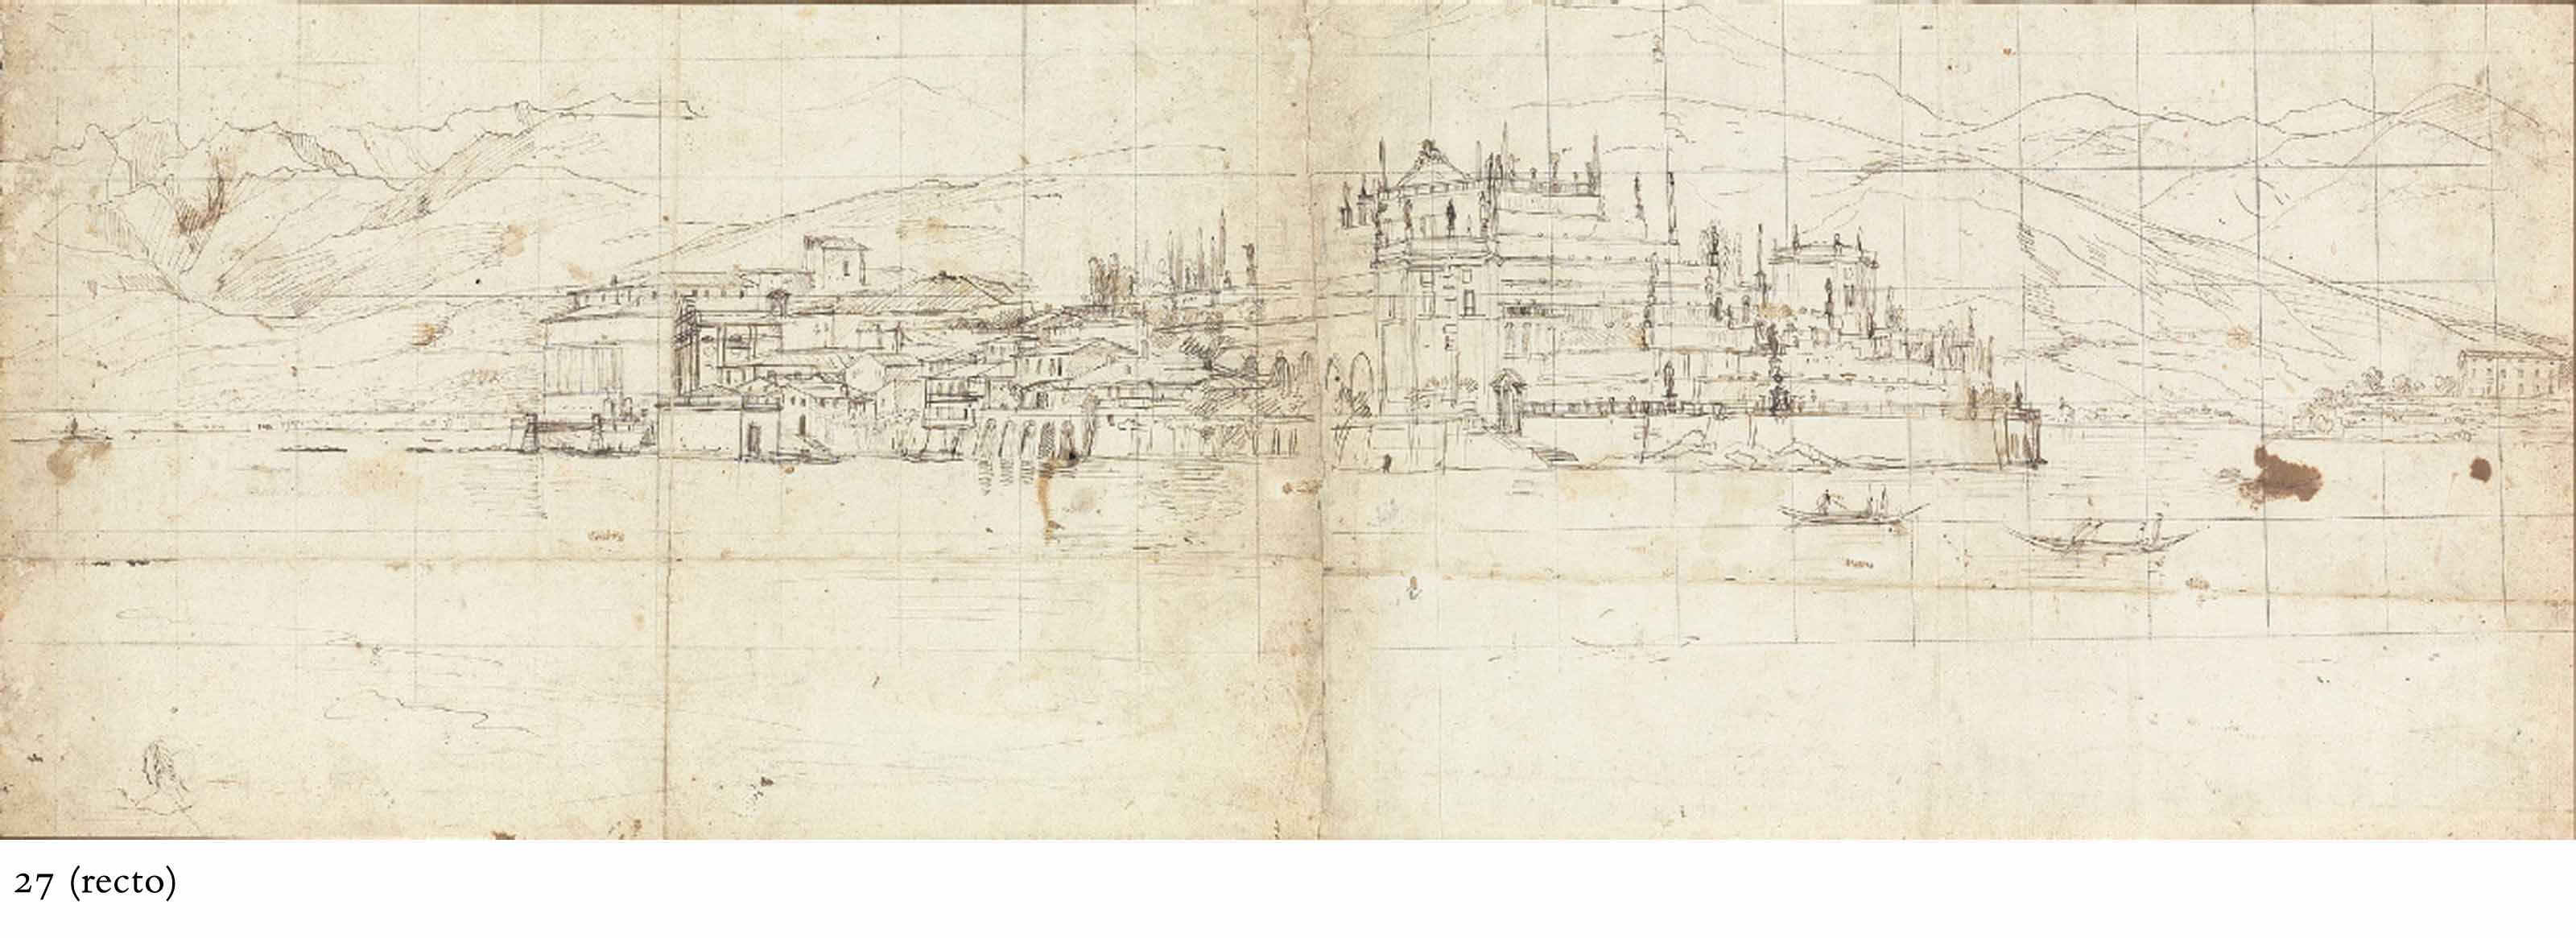 View of Isola Bella on Lake Maggiore (recto); Details of the same view, with terraced gardens and a mountain range (verso)